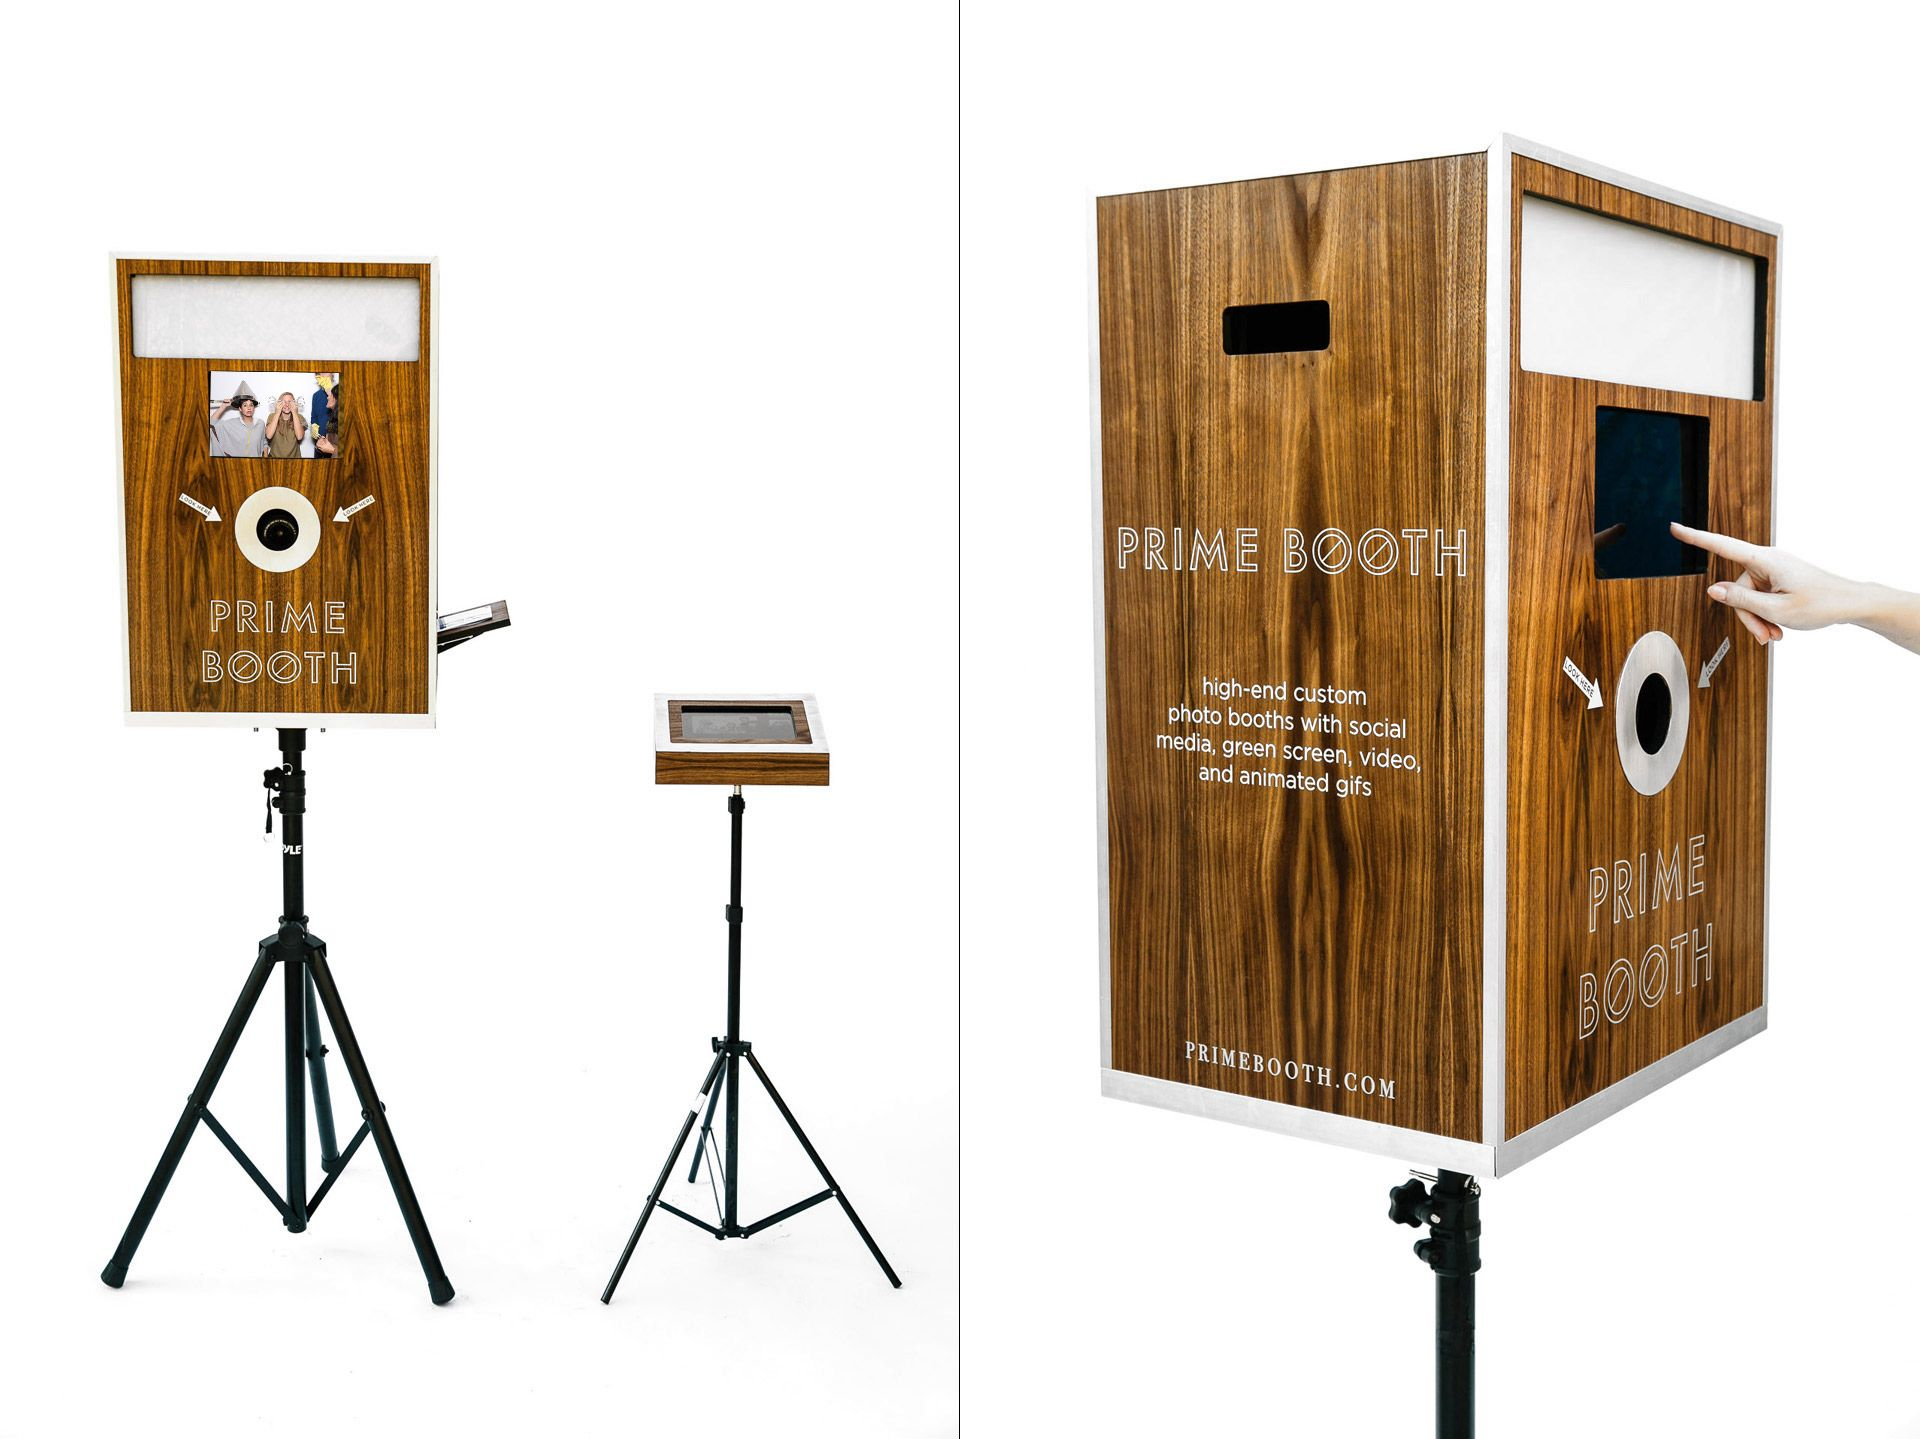 Custom Photo Booths Los Angeles - LA Photo Booth Rentals by Prime